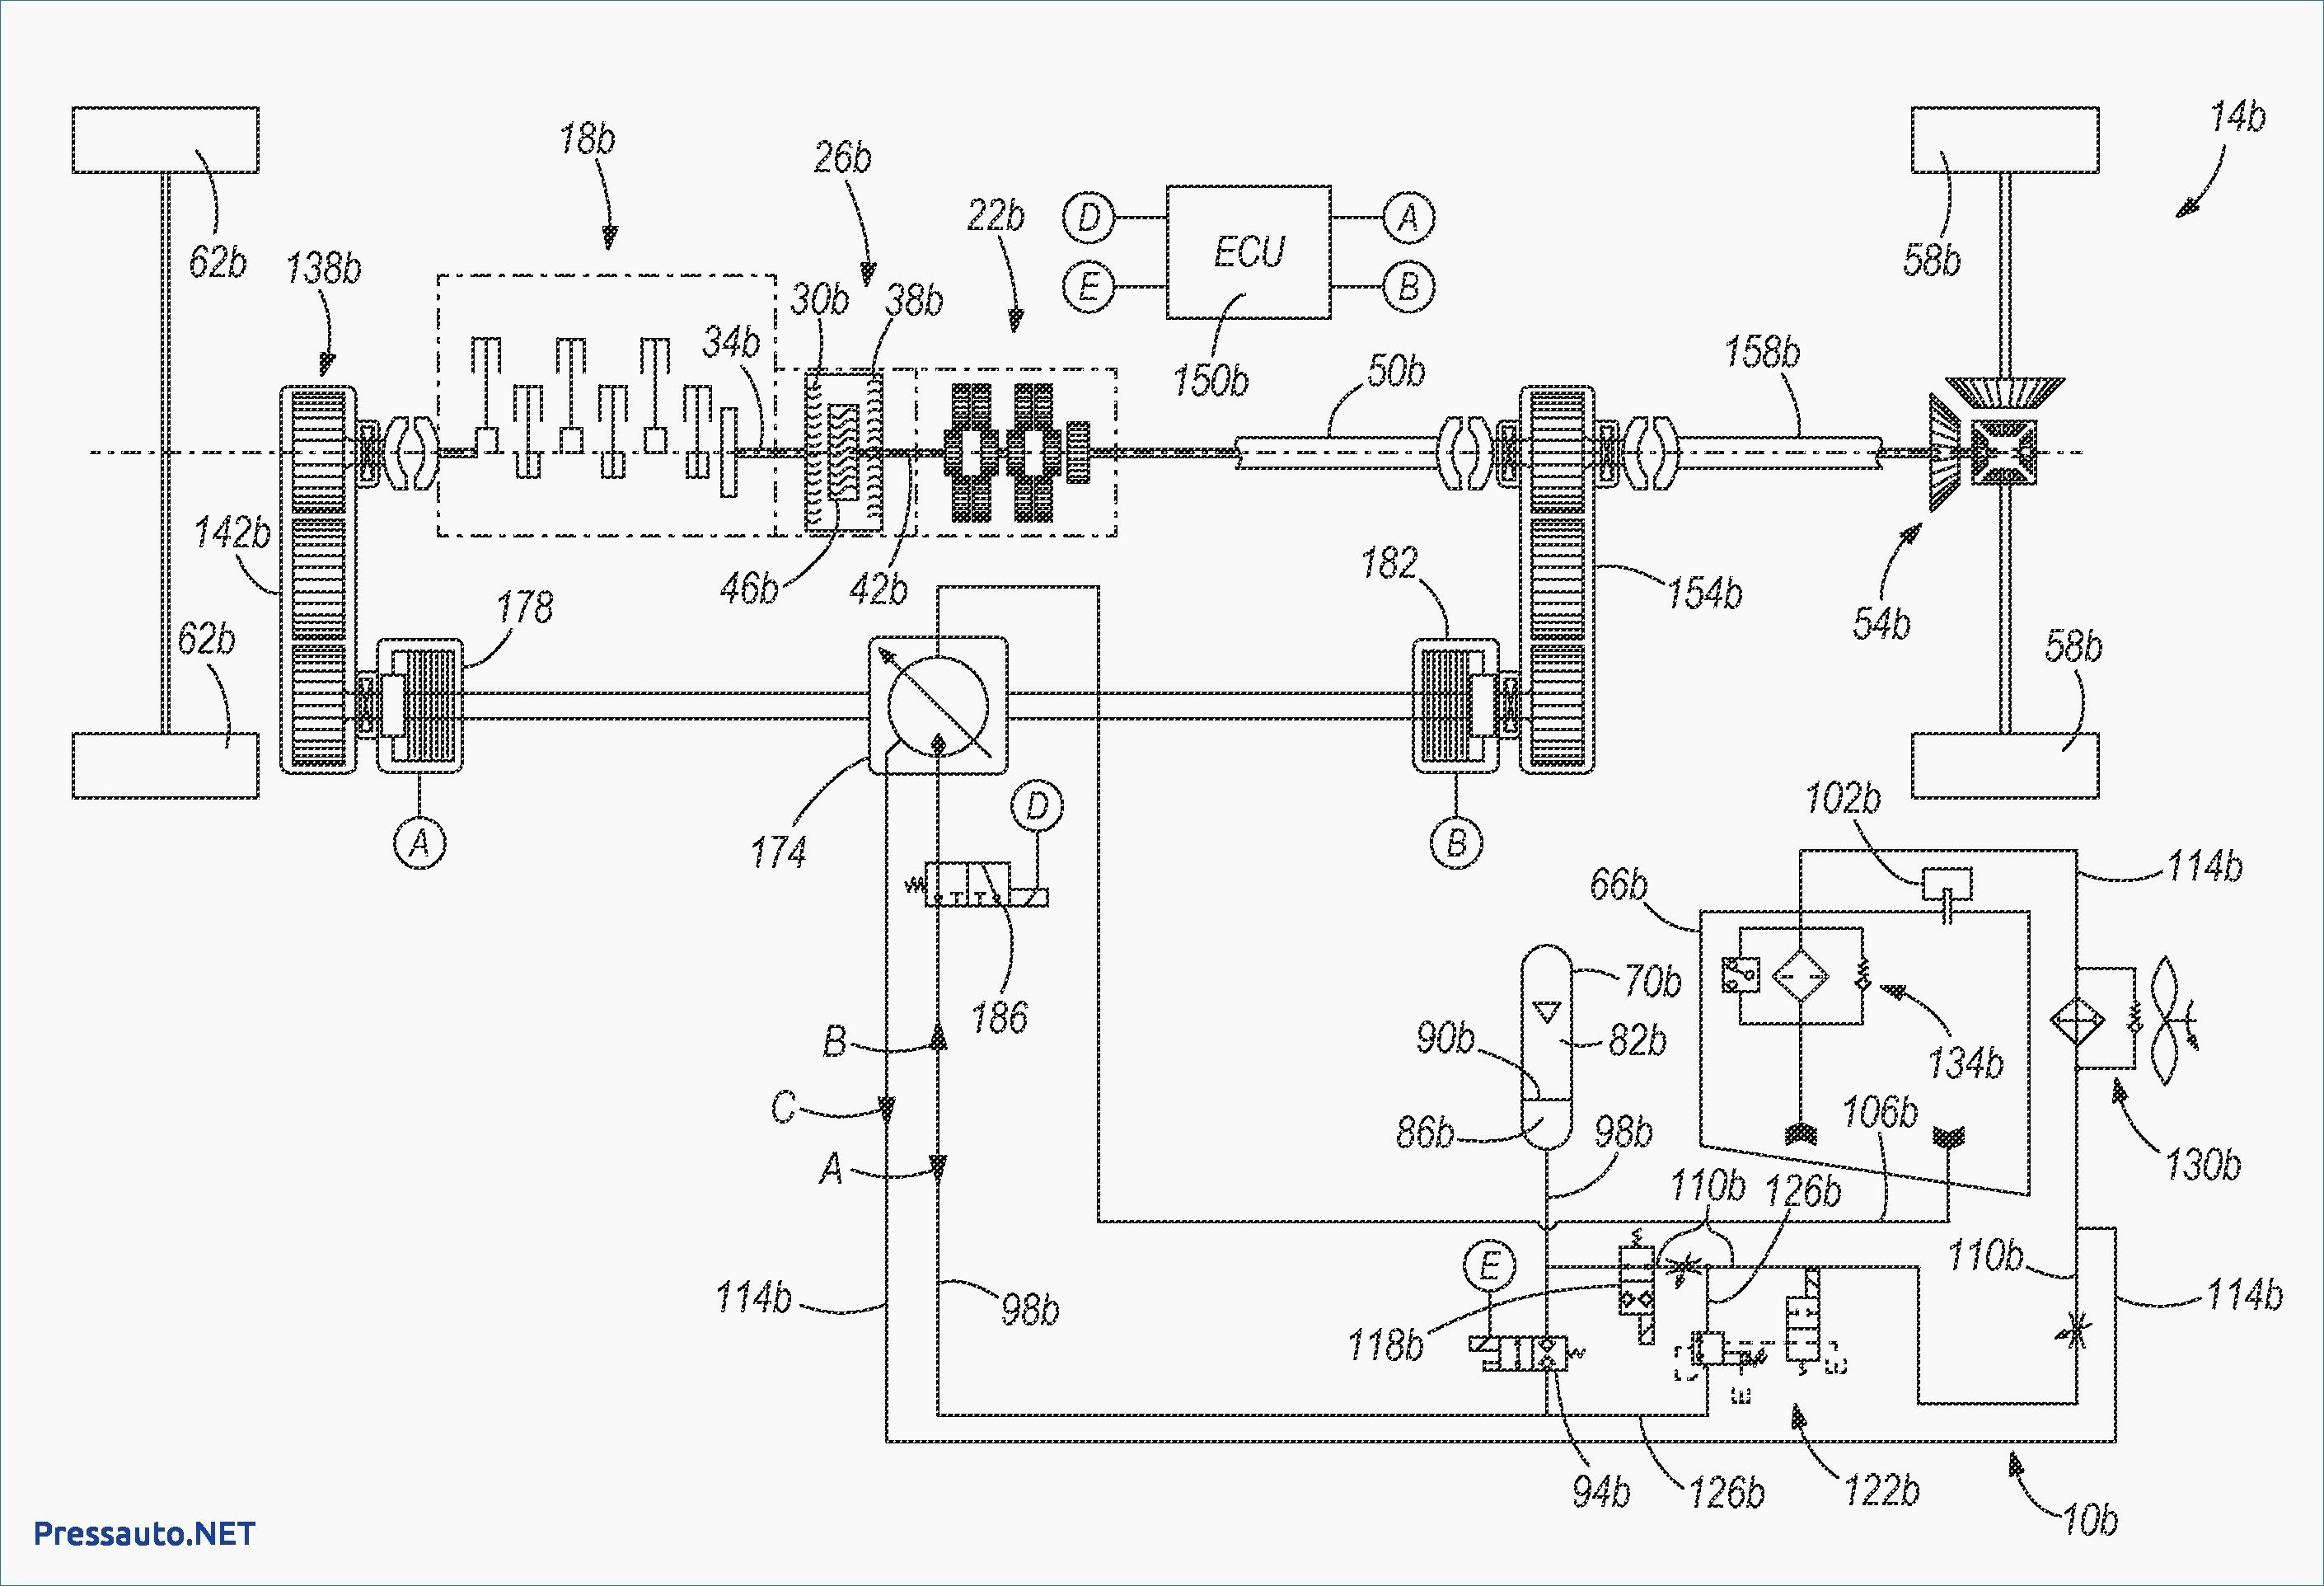 Mahindra Wiring Diagram - Wiring Diagram Section on